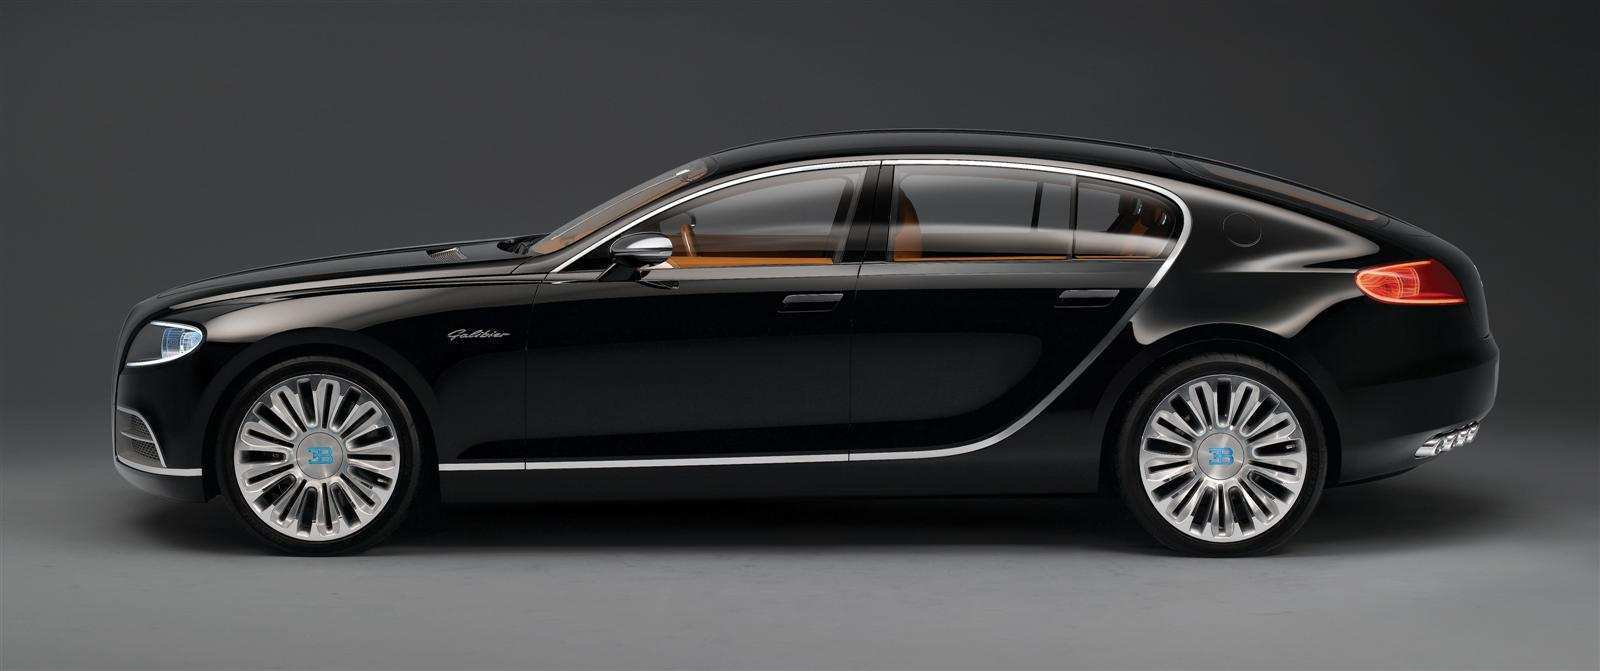 44 The Best Bugatti Galibier 2020 Price And Release Date